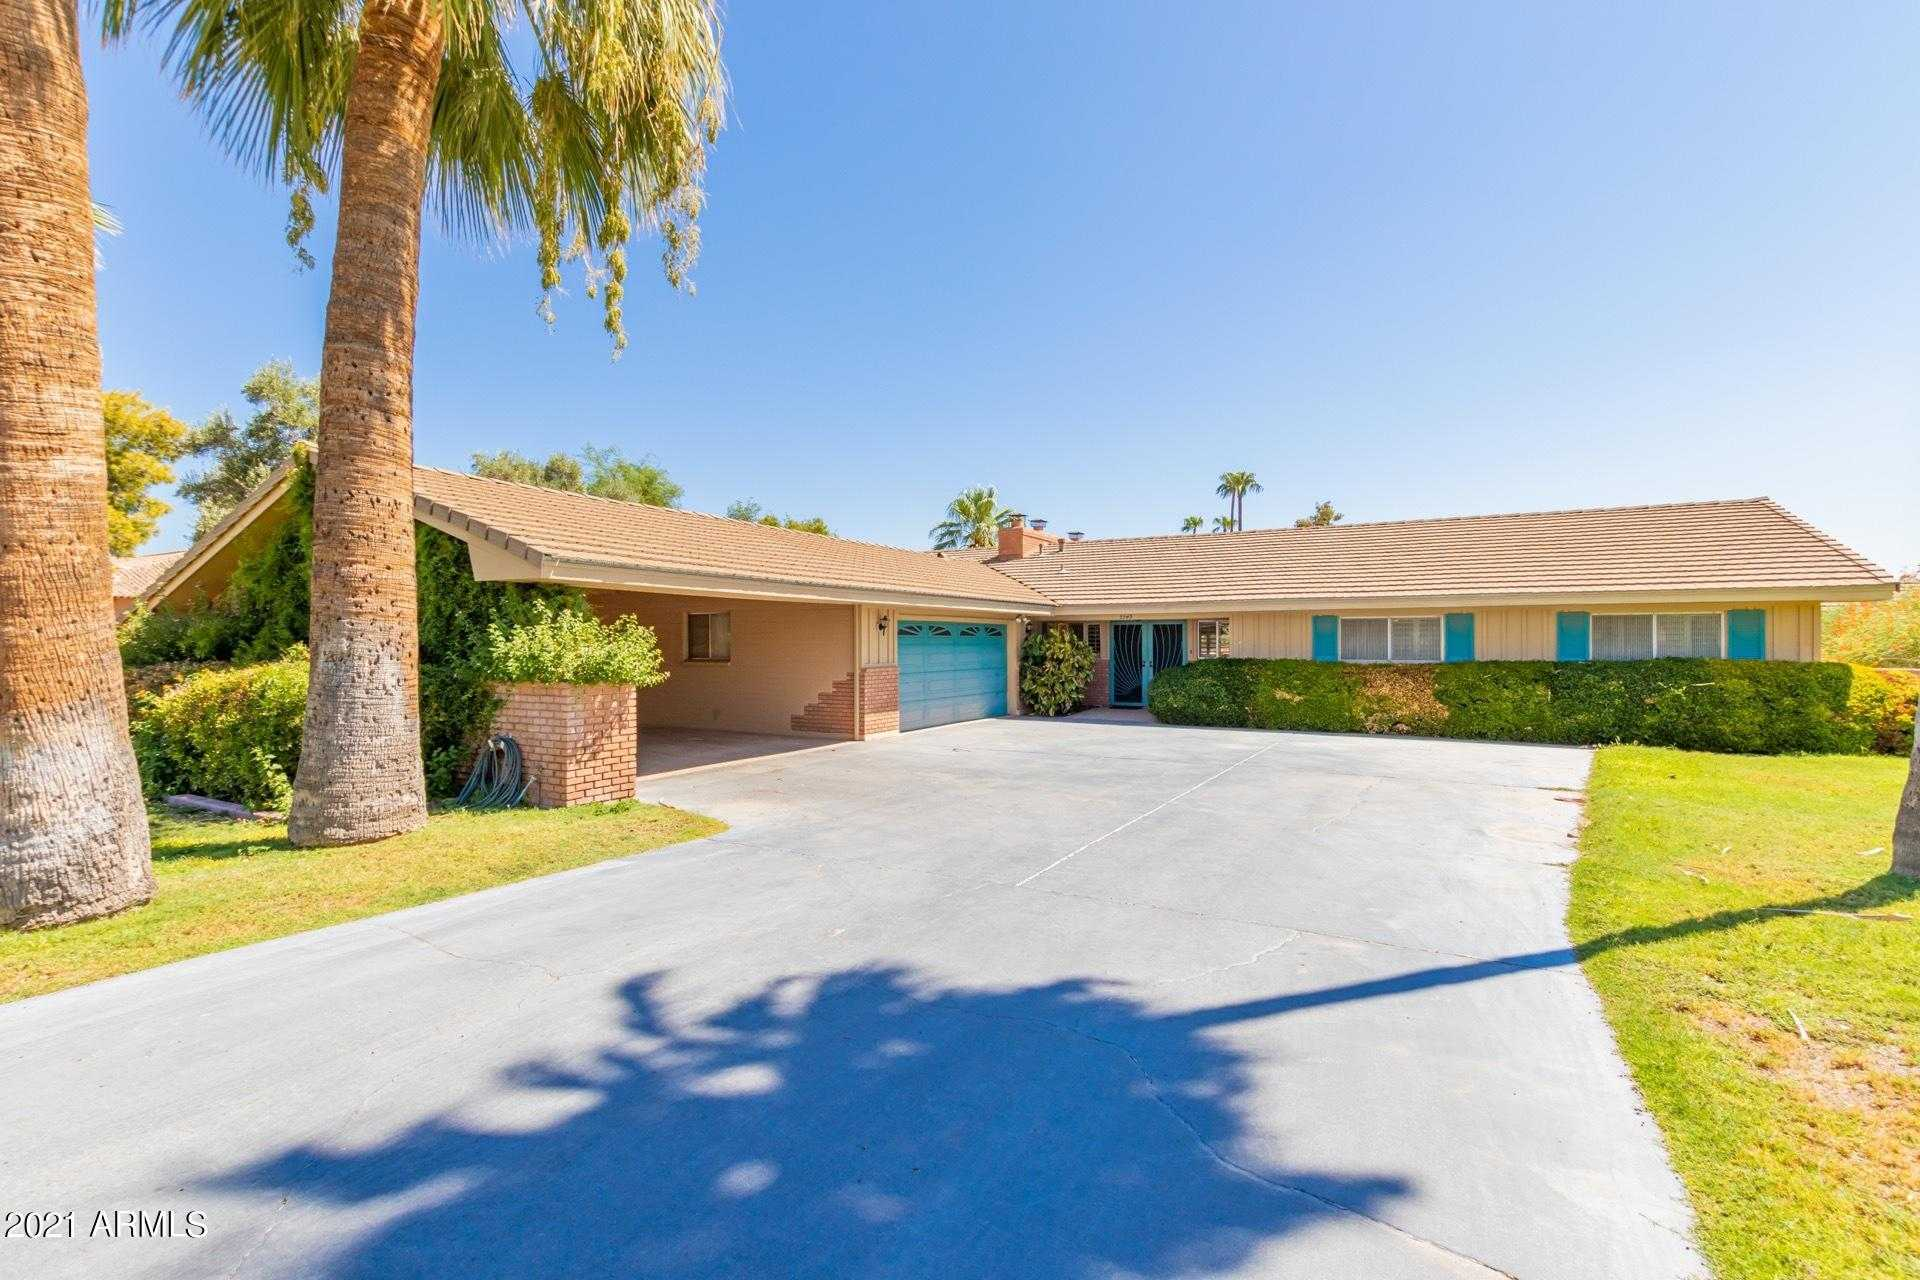 $1,775,000 - 3Br/3Ba - Home for Sale in Stoneview, Paradise Valley